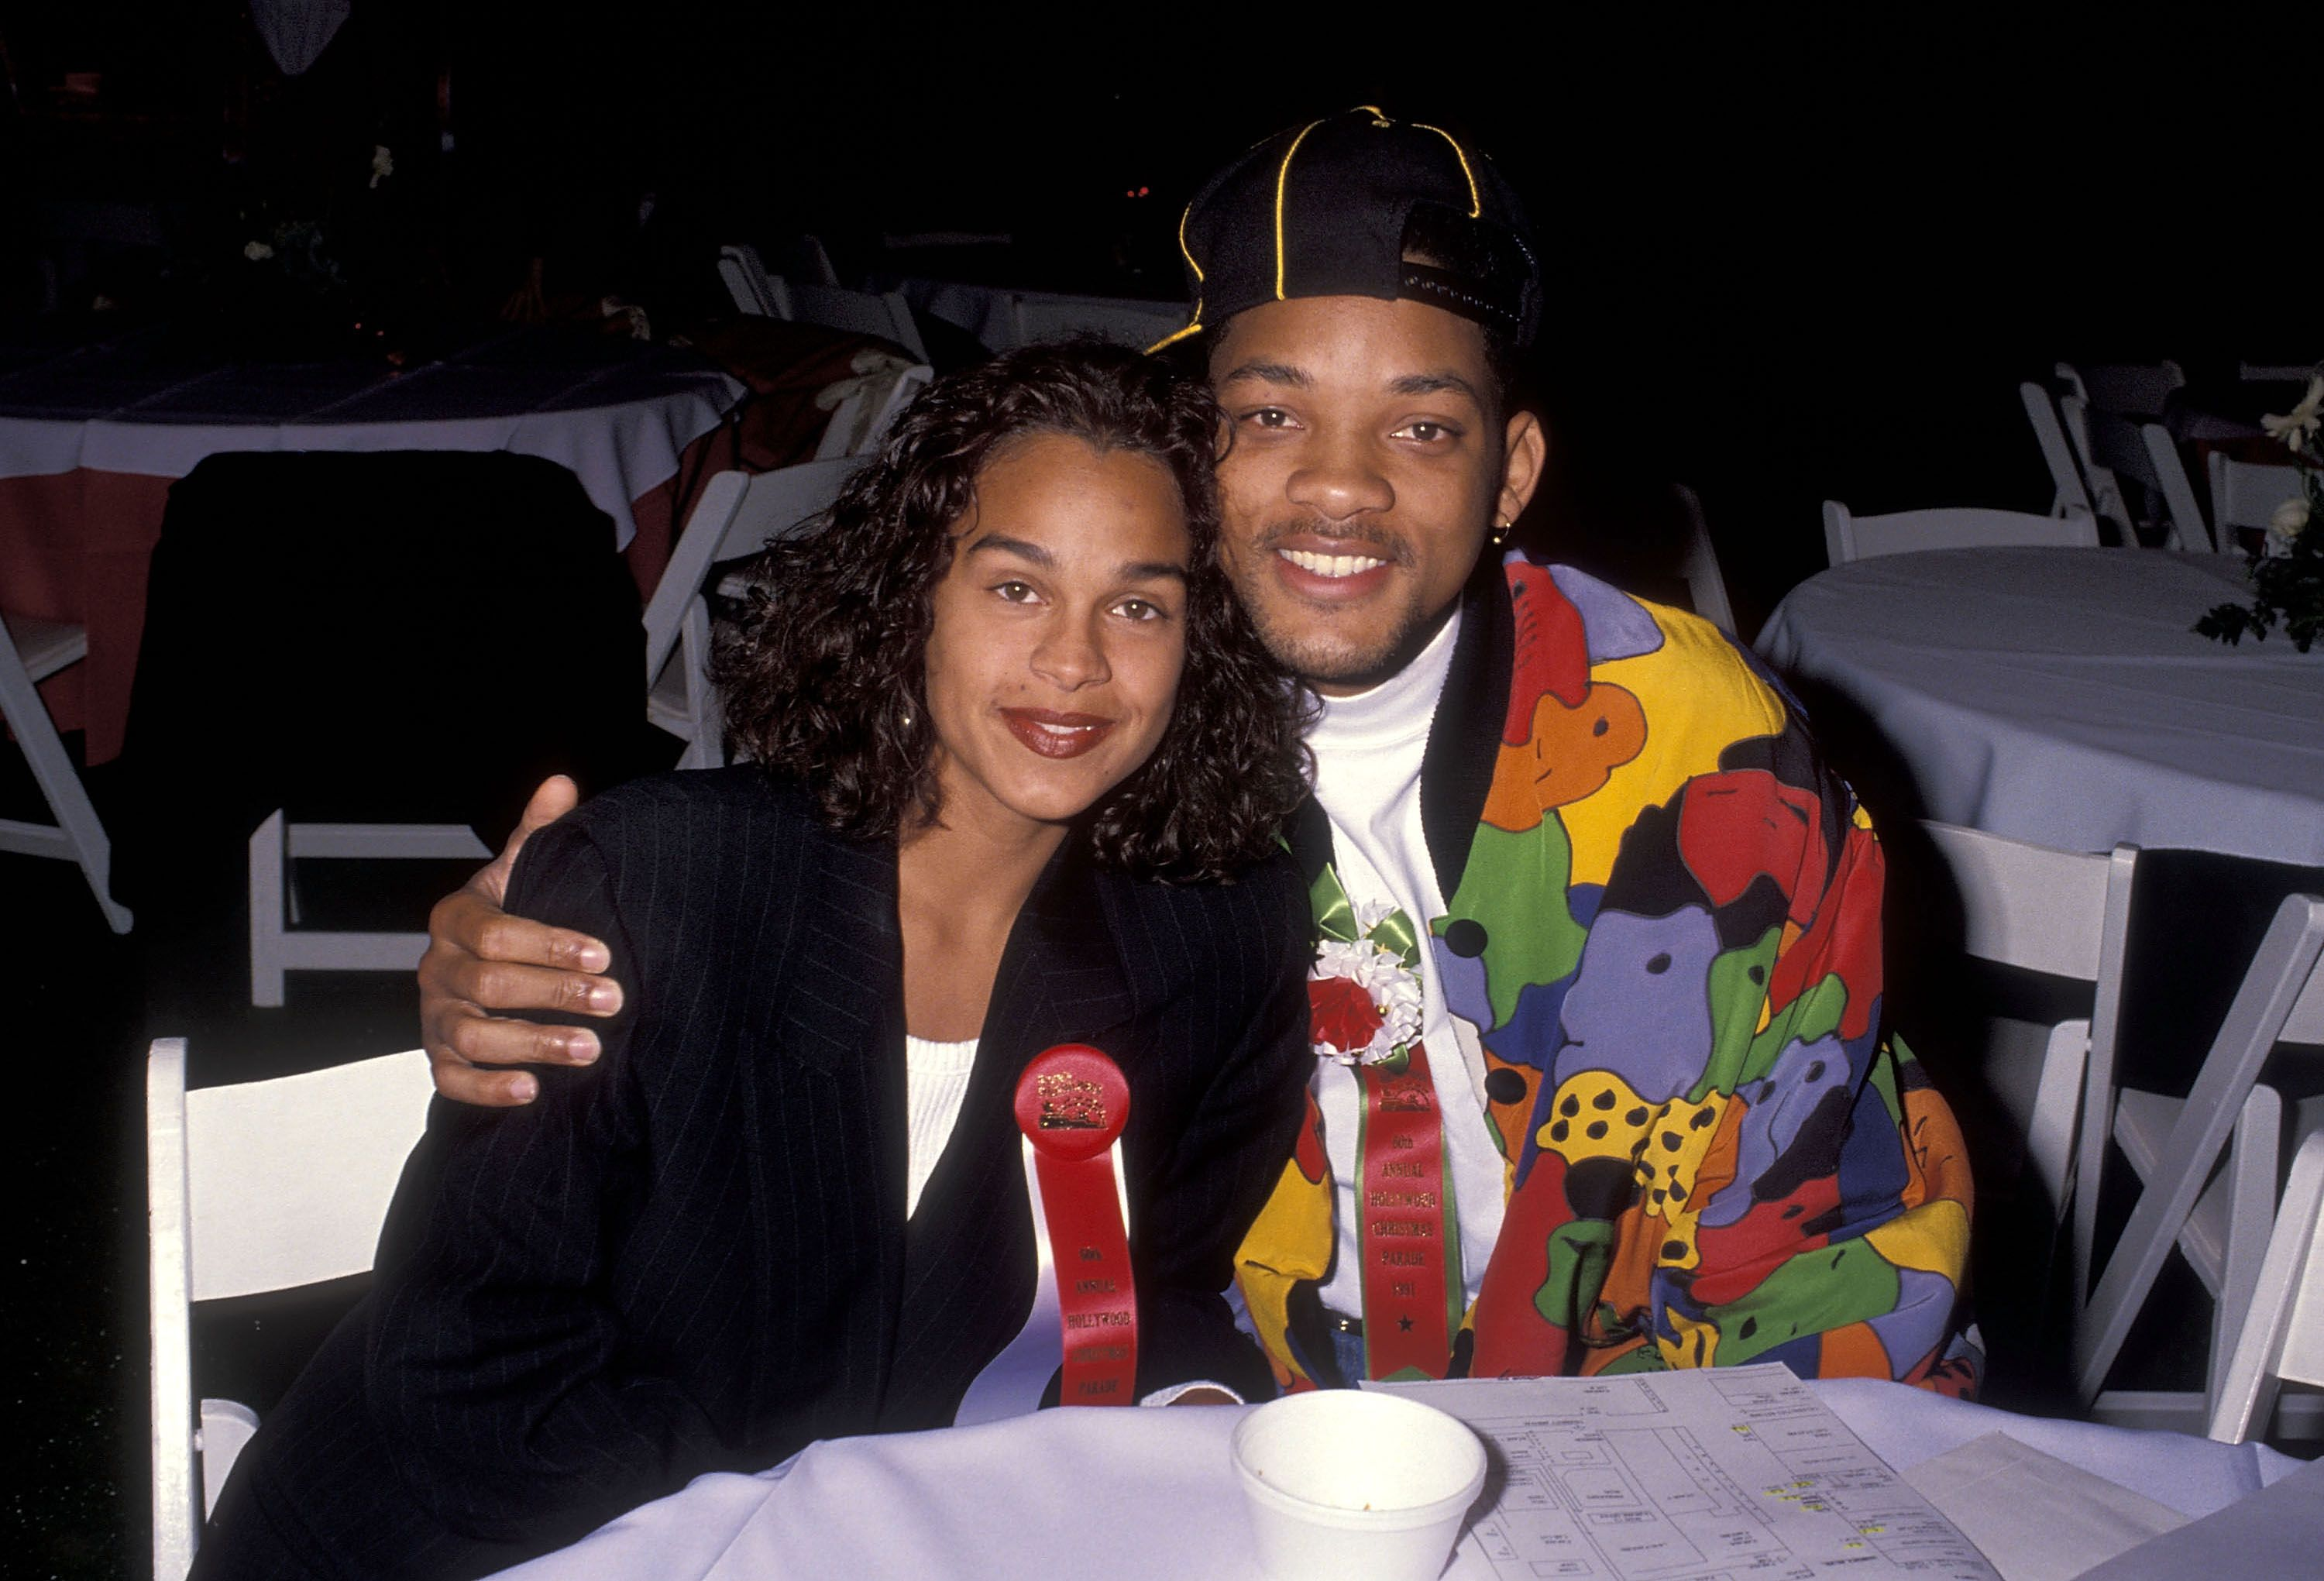 Actor Will Smith and girlfriend Sheree Zampino attend the 60th Annual Hollywood Christmas Parade / Getty Images